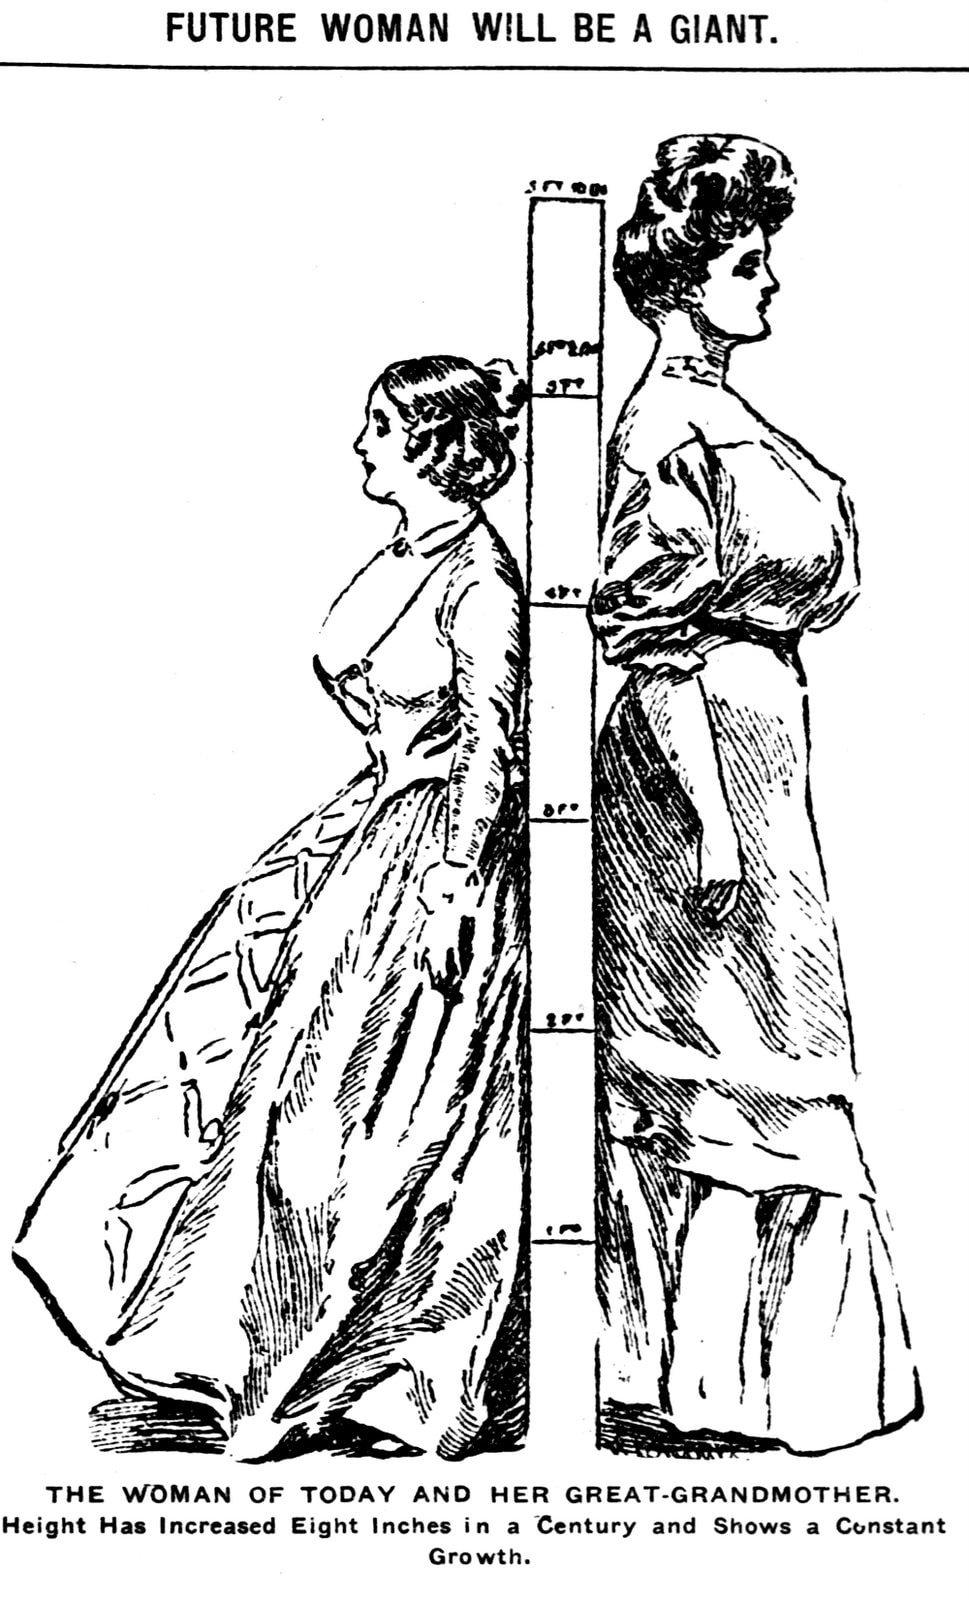 Women getting taller - The woman of today and her great grandmother (1906)